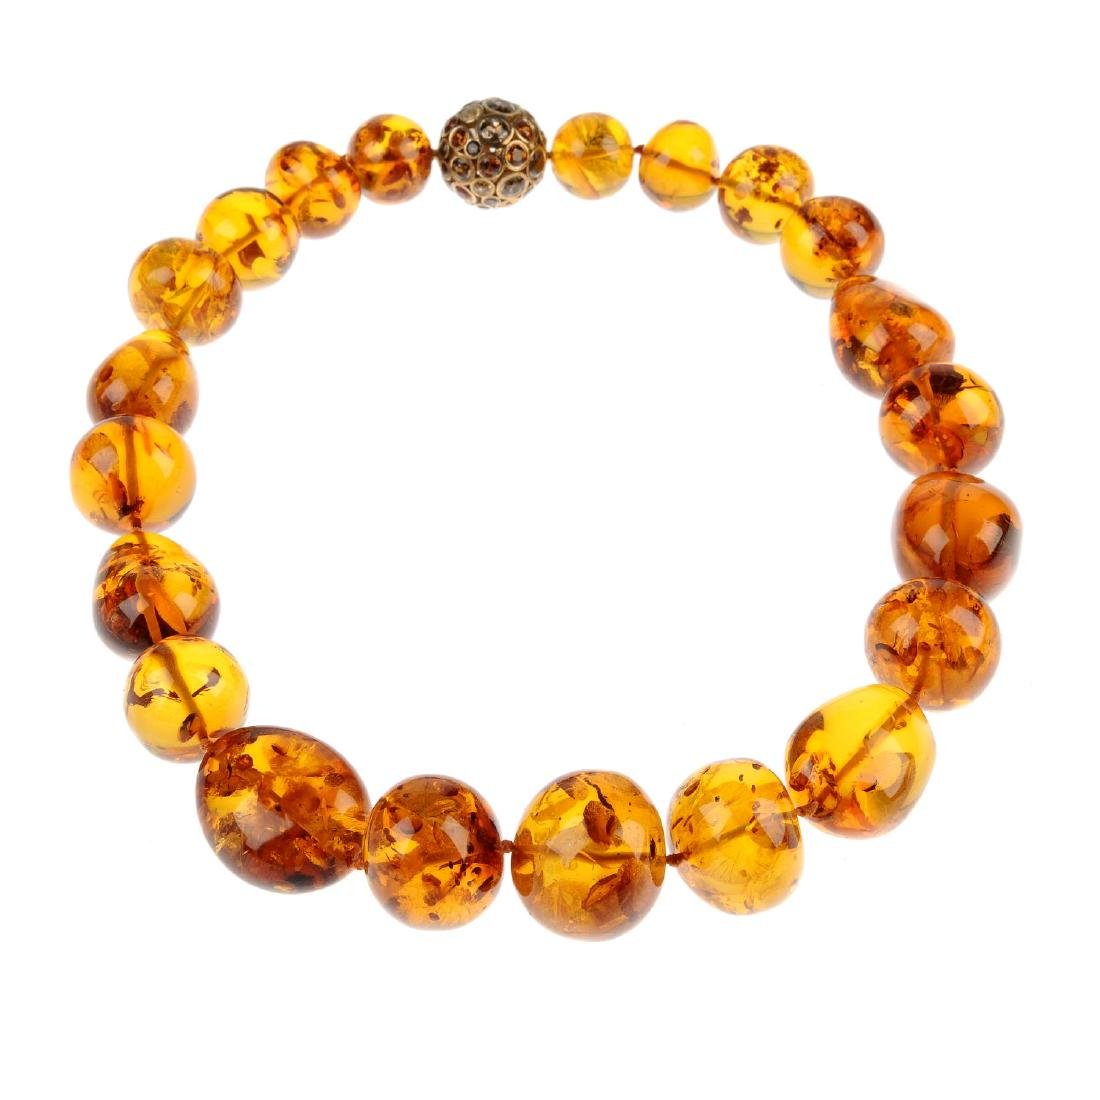 A modified amber bead necklace and a piece of modified